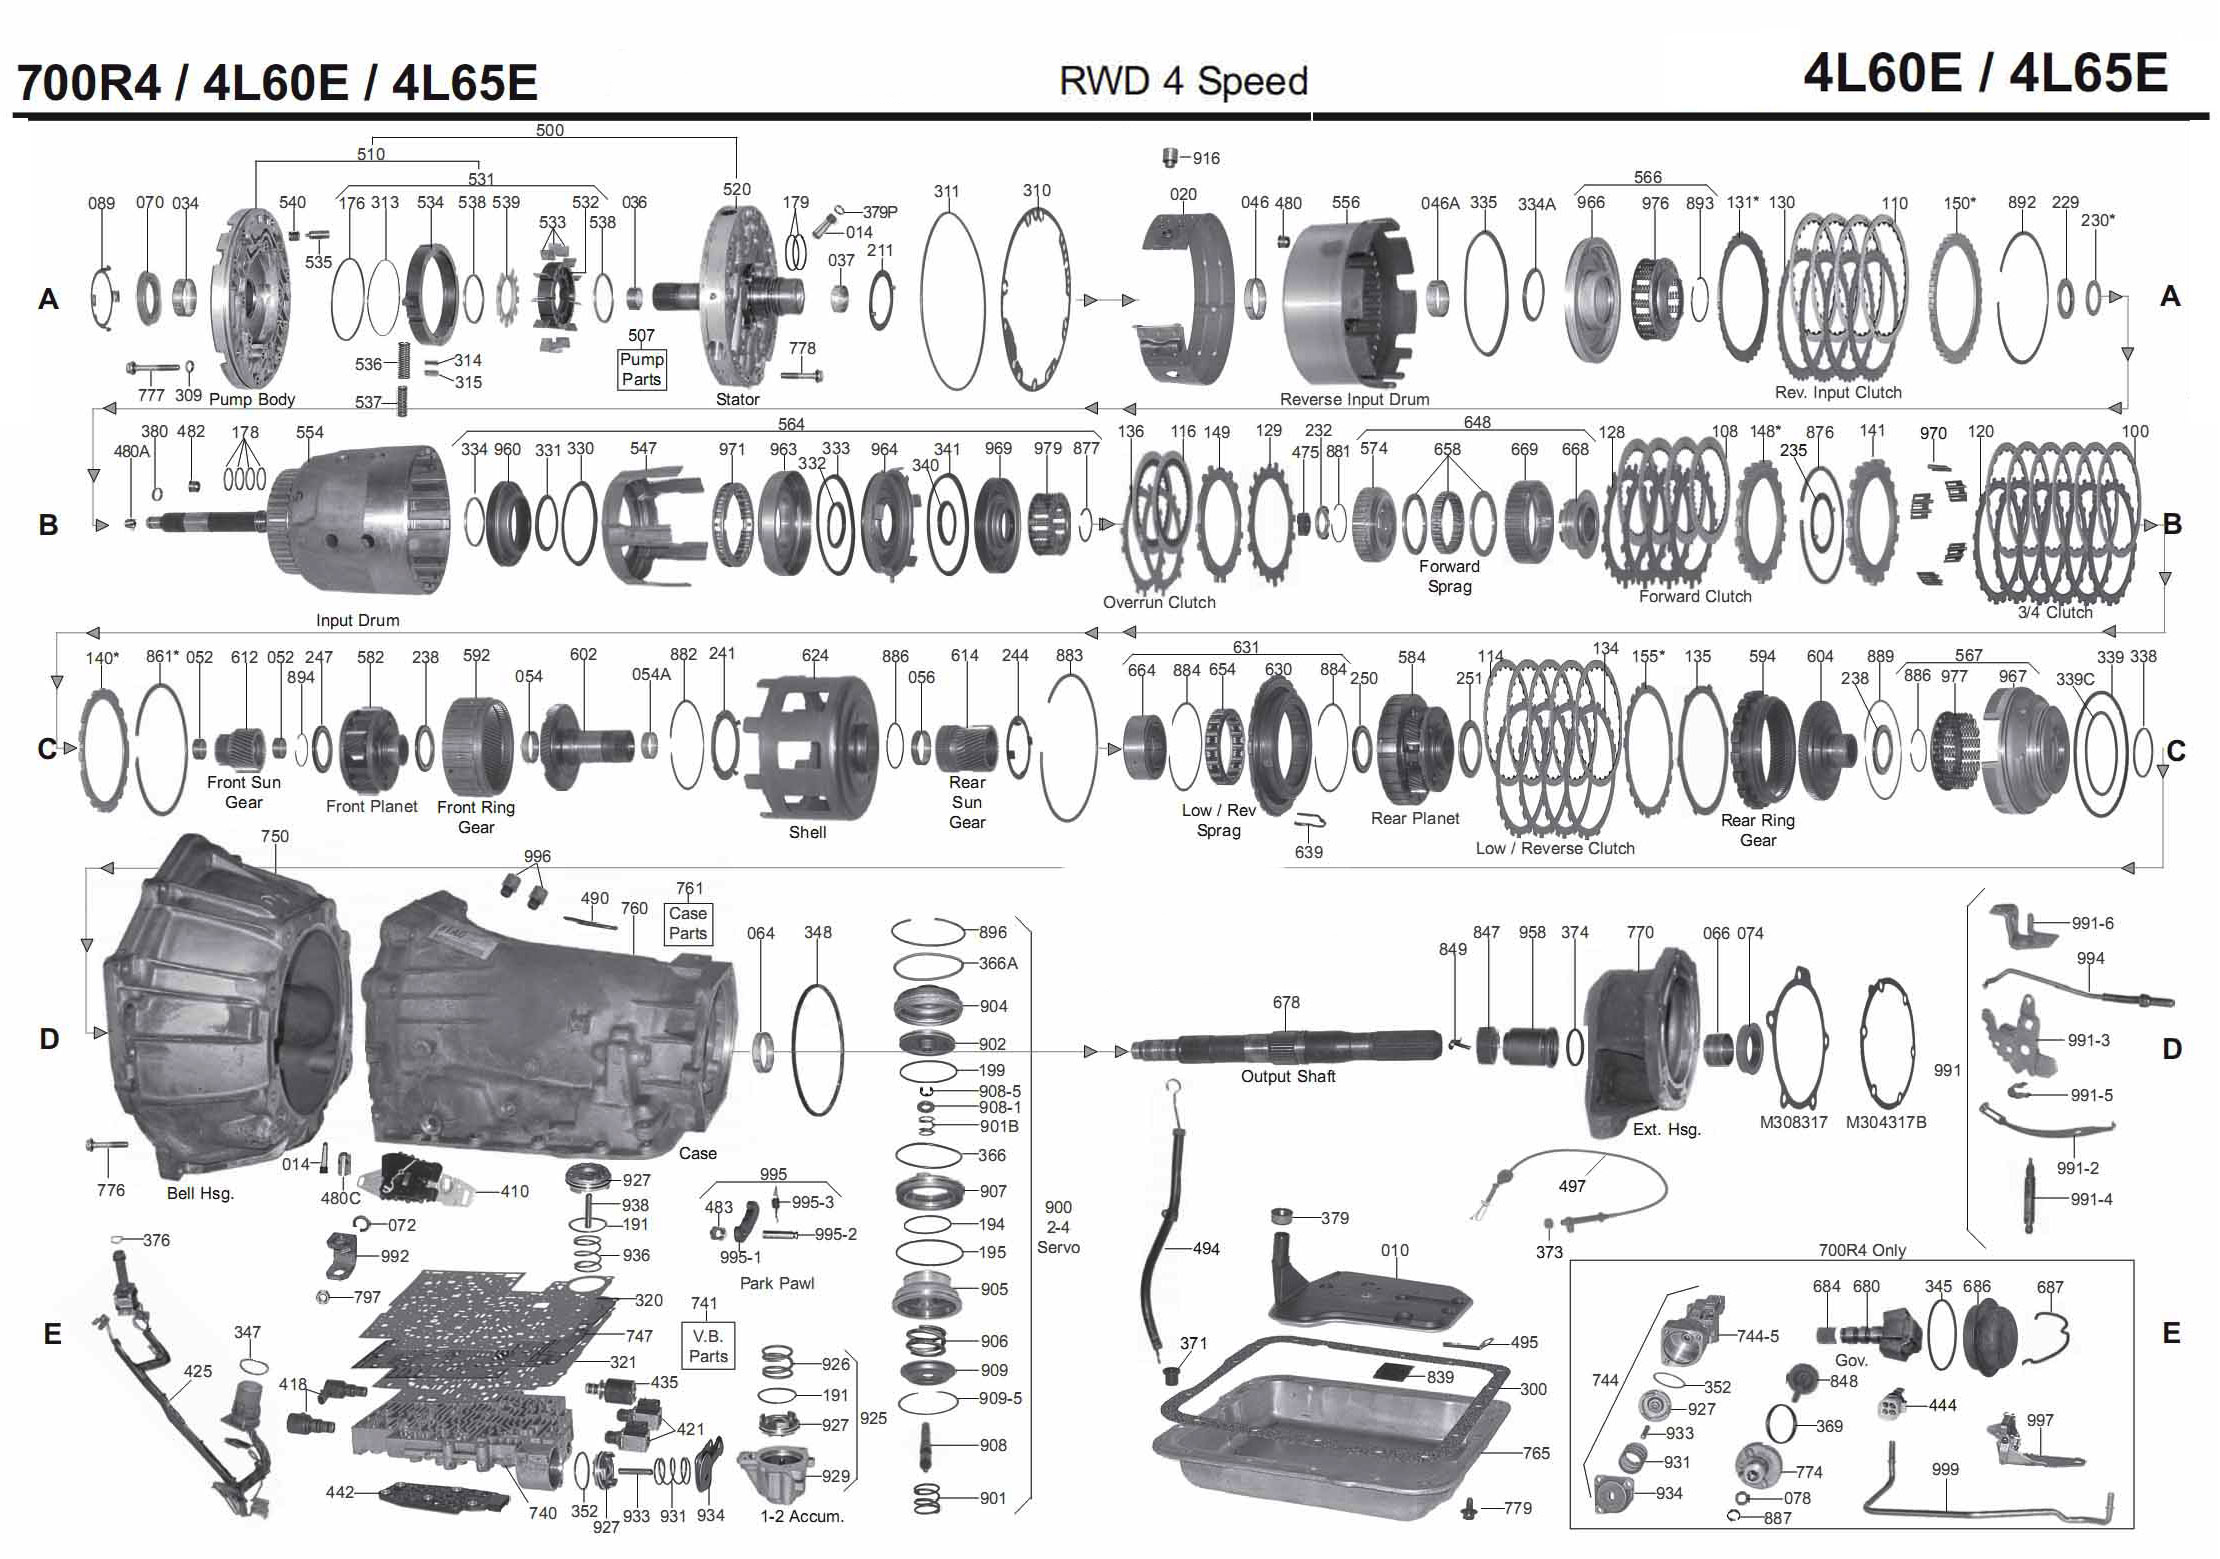 1993 4l80e wiring diagram belling cooker transmission repair manuals 4l60e 4l65e 700r4